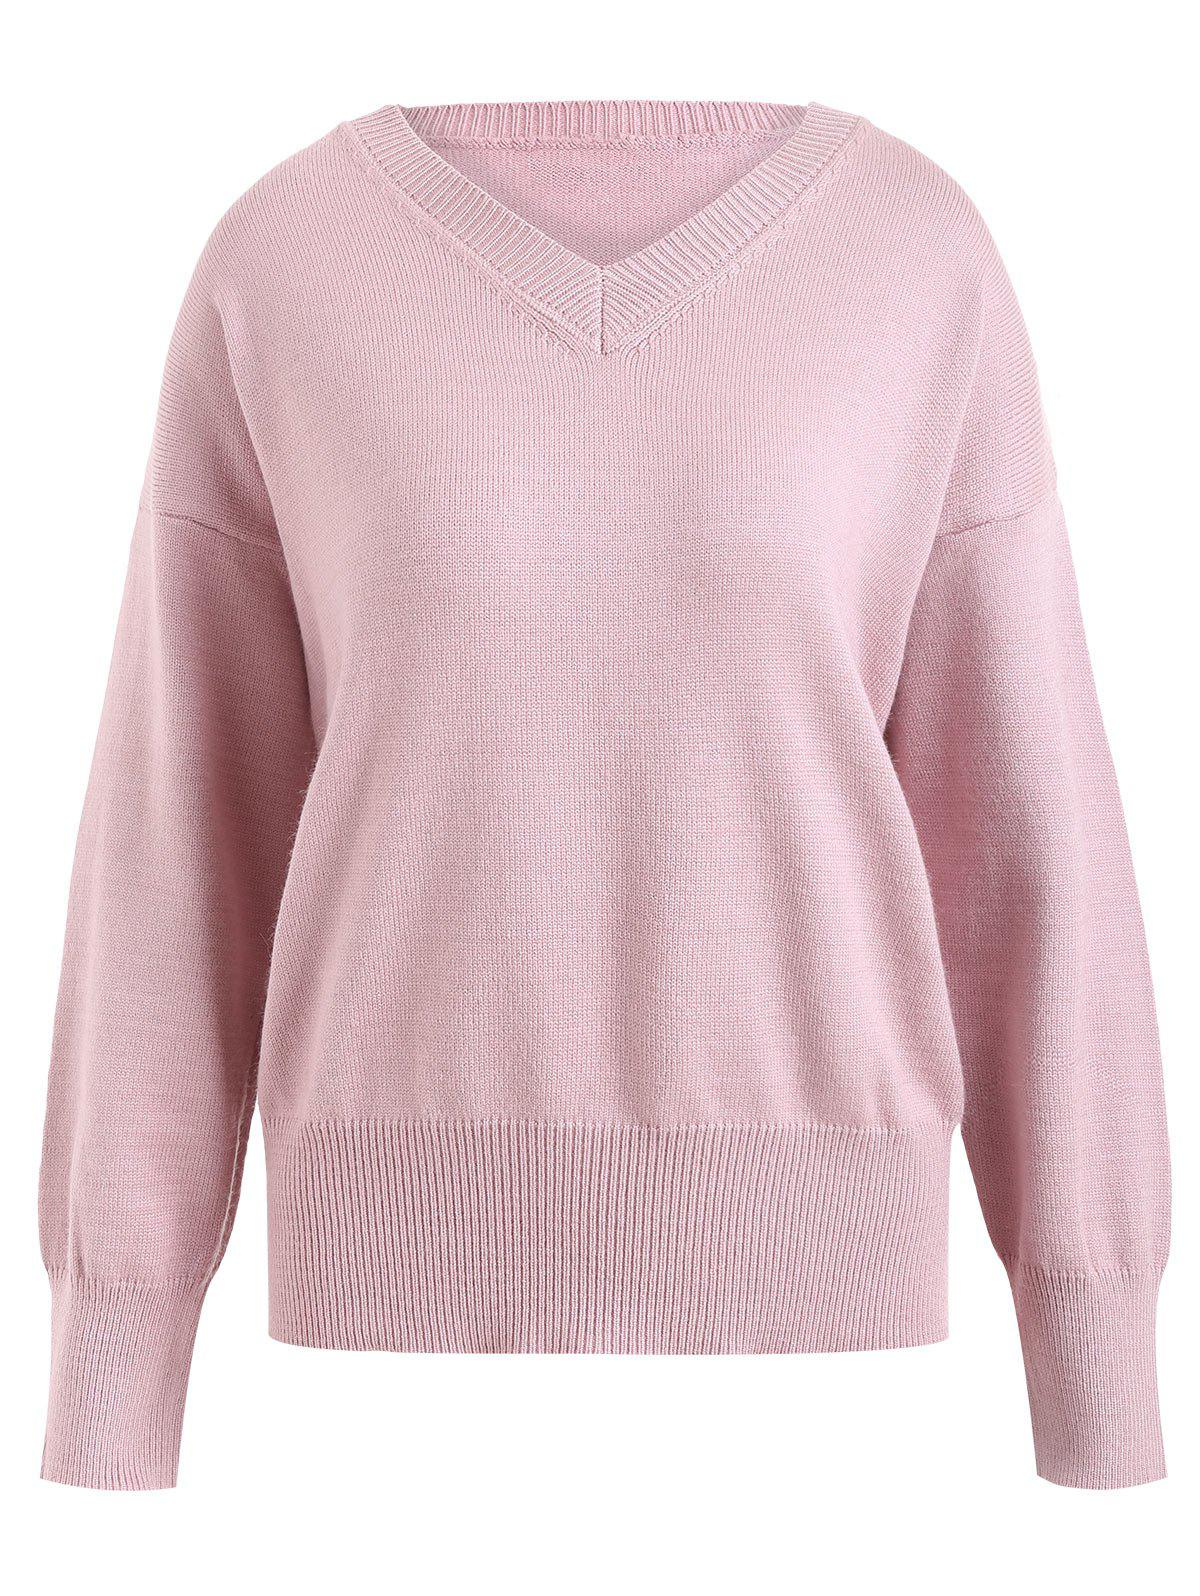 2018 Plus Size V Neck Soft Knit Sweater PINK XL In Plus Size ...